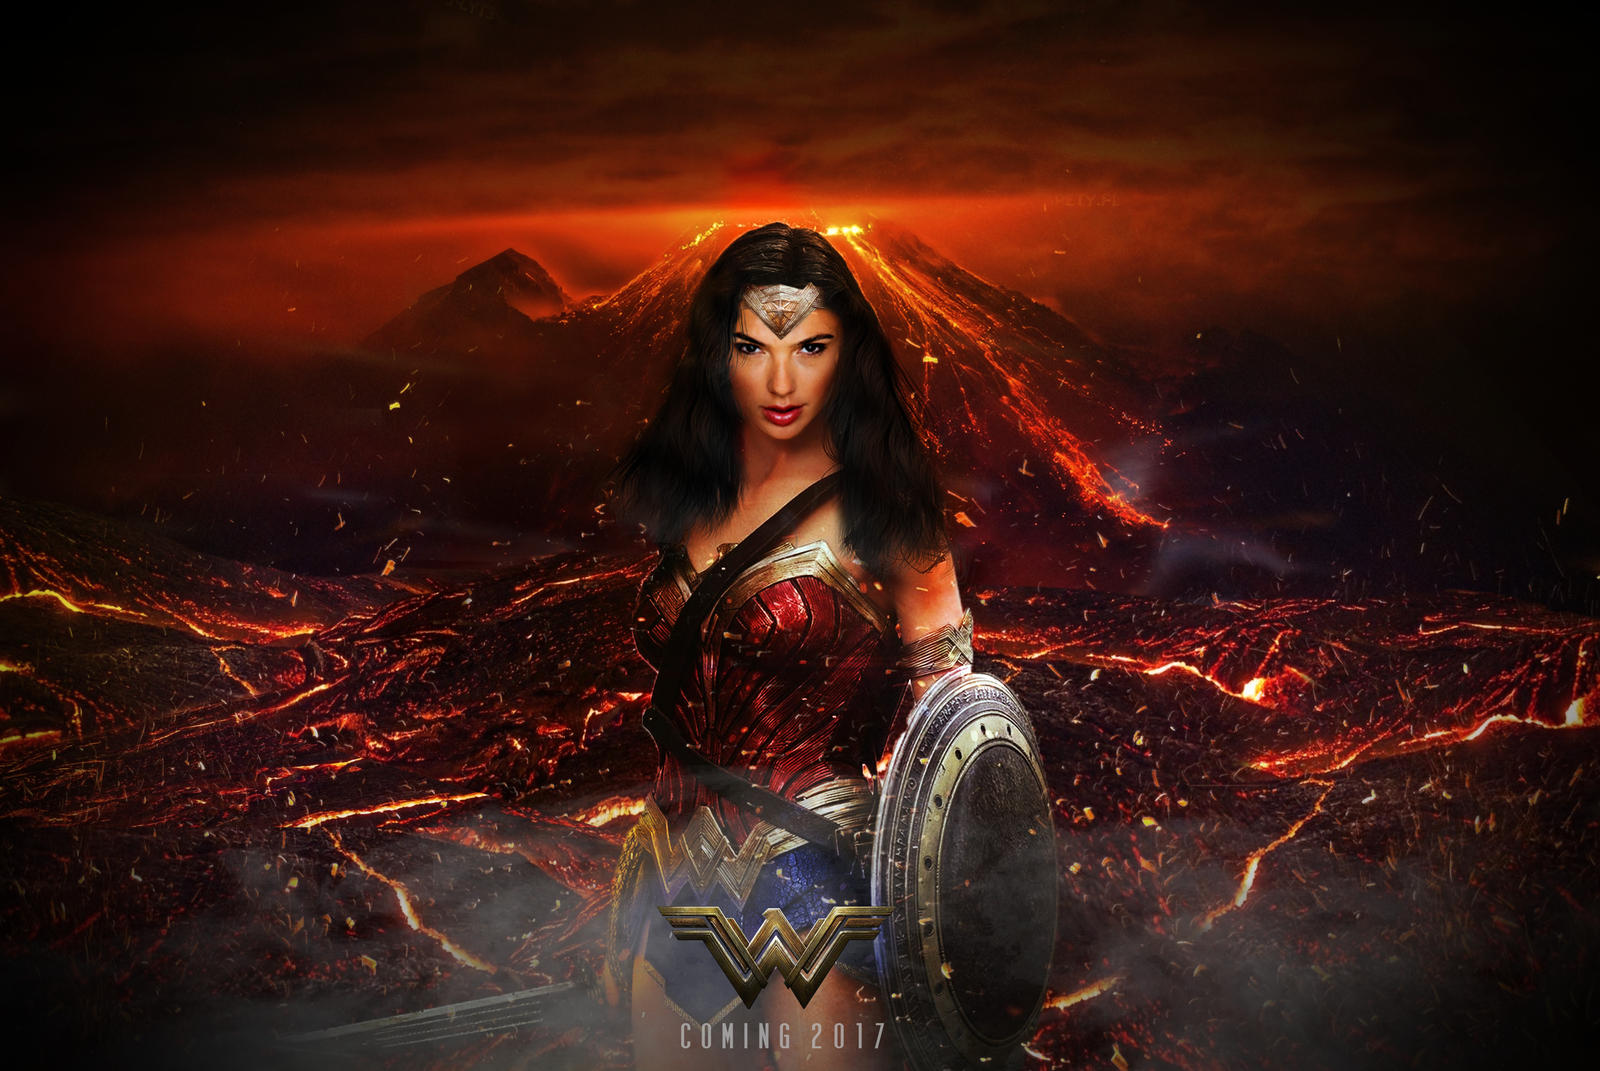 2017 Movie Posters: Wonder Woman (2017) Teaser Poster By Cameronrobertson On